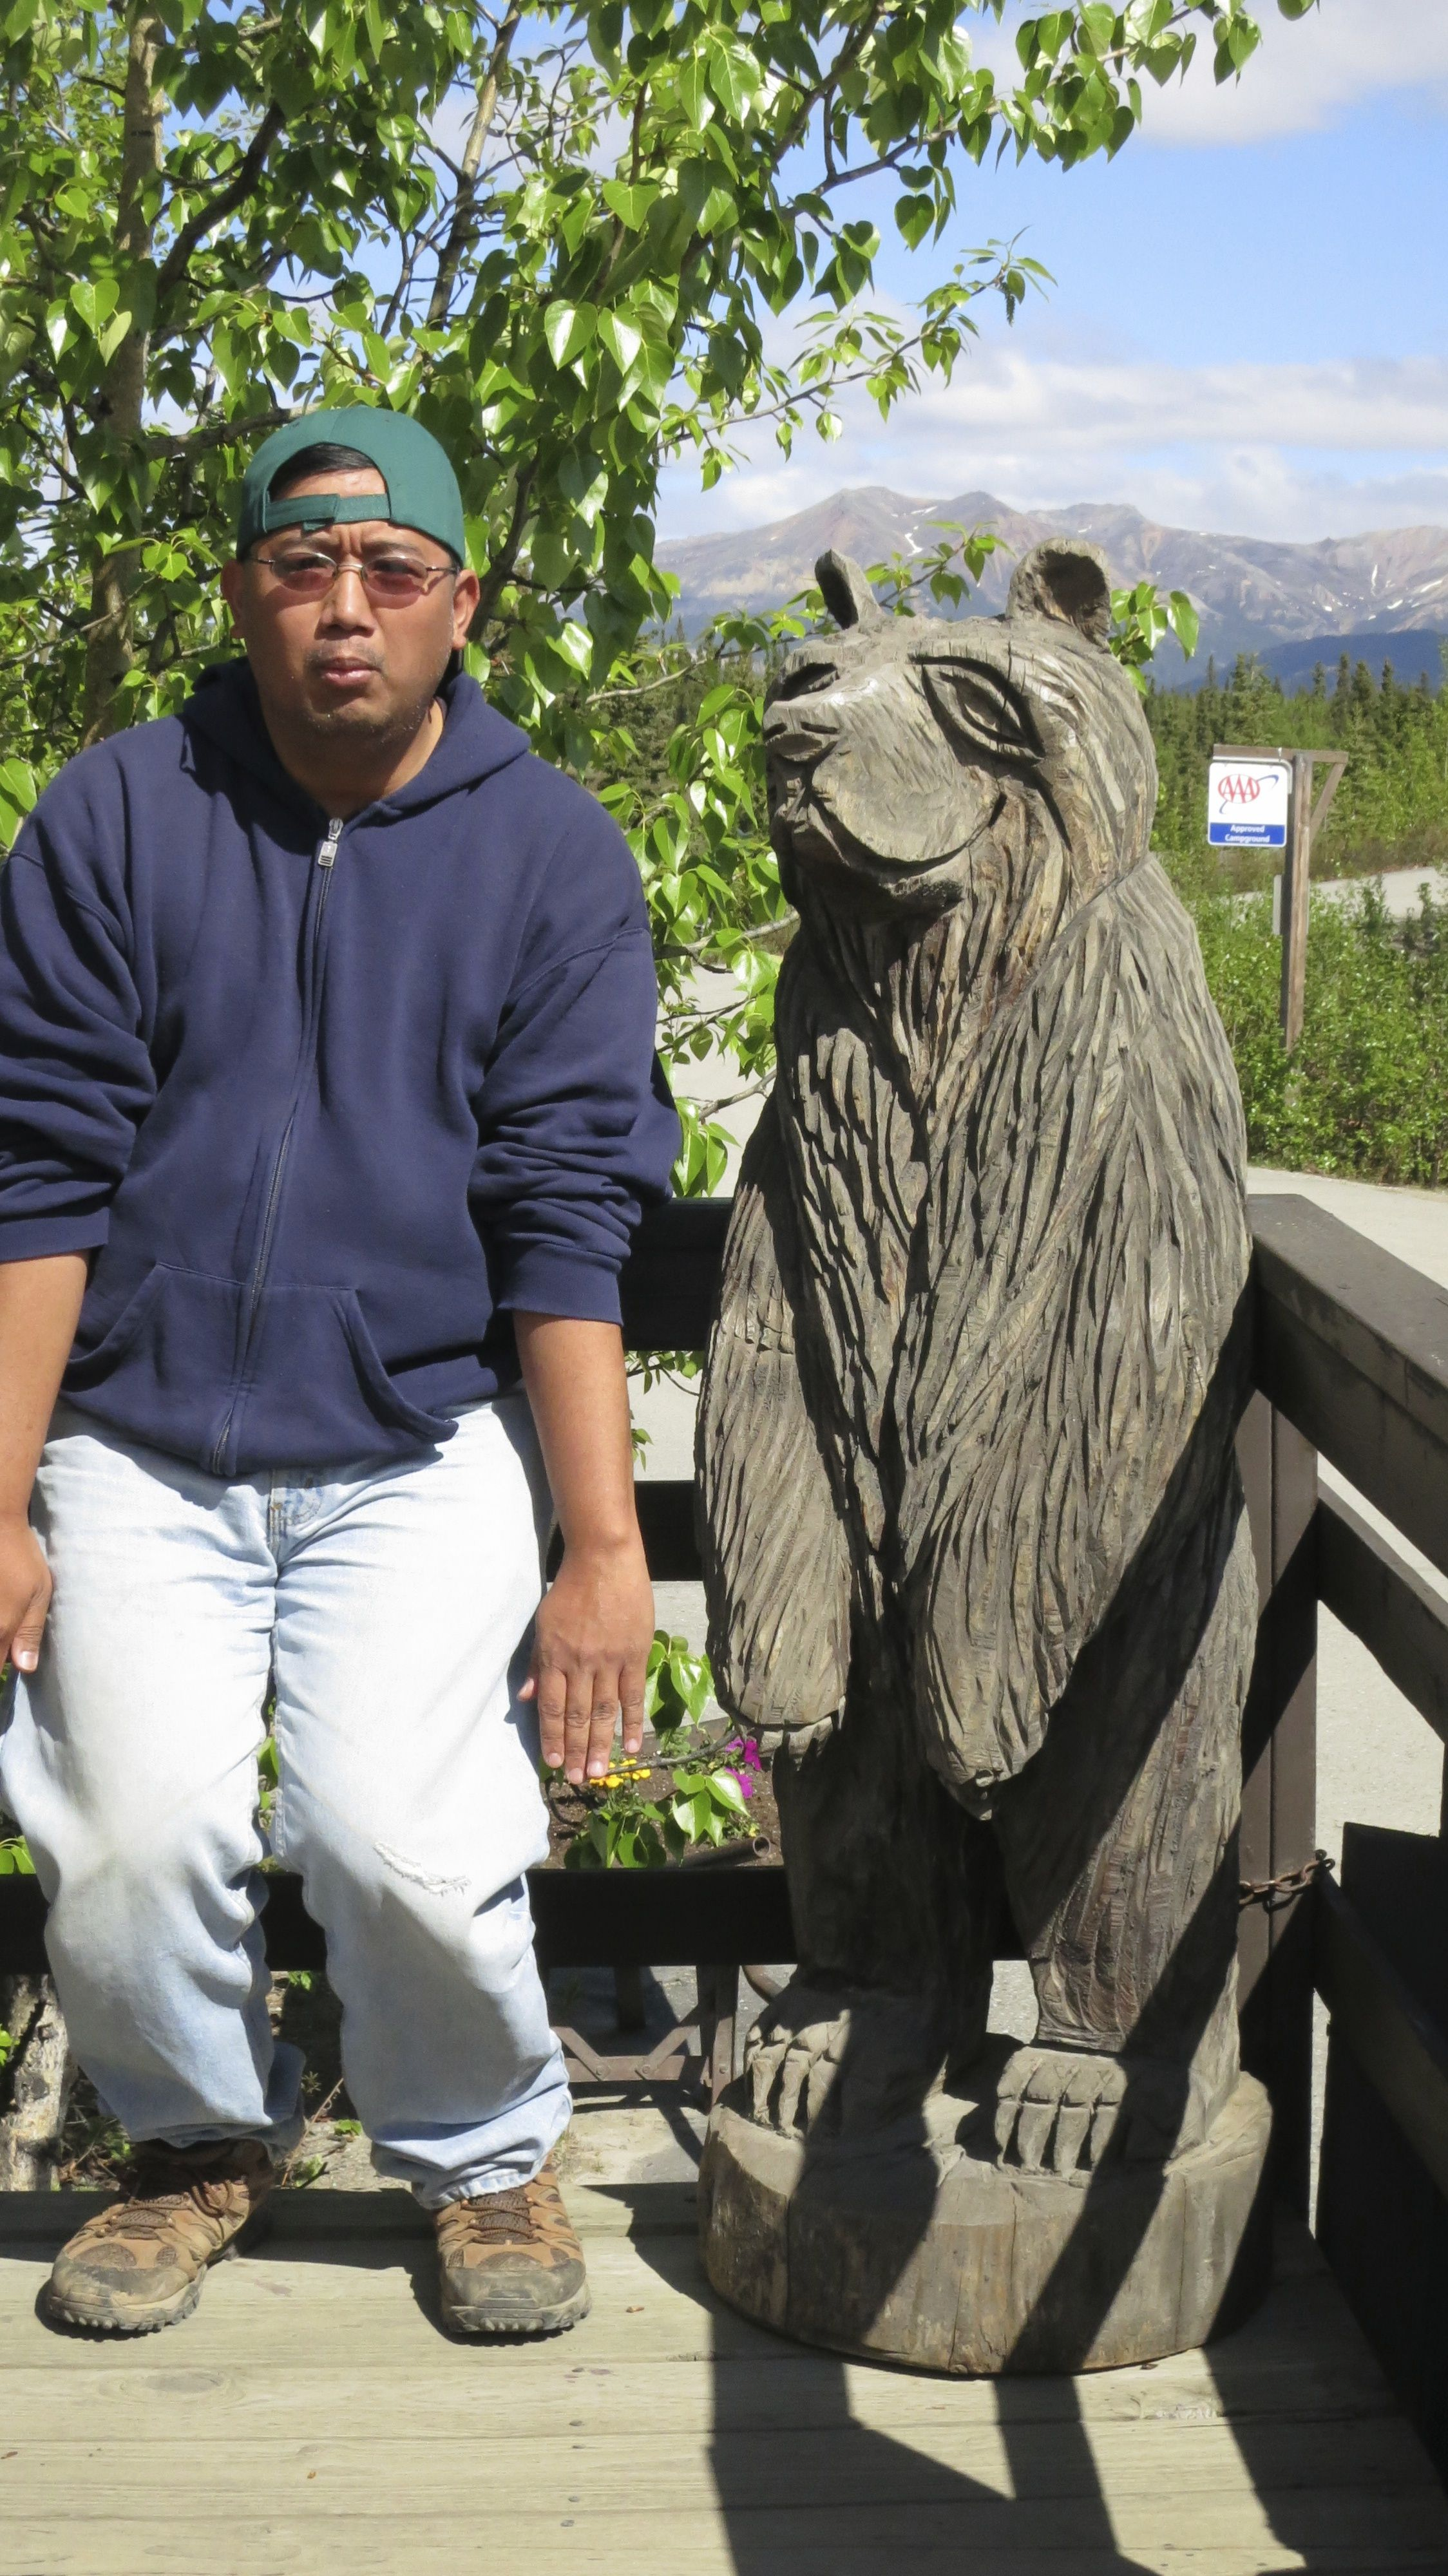 Me and a bear (I'm the one on the left lol)